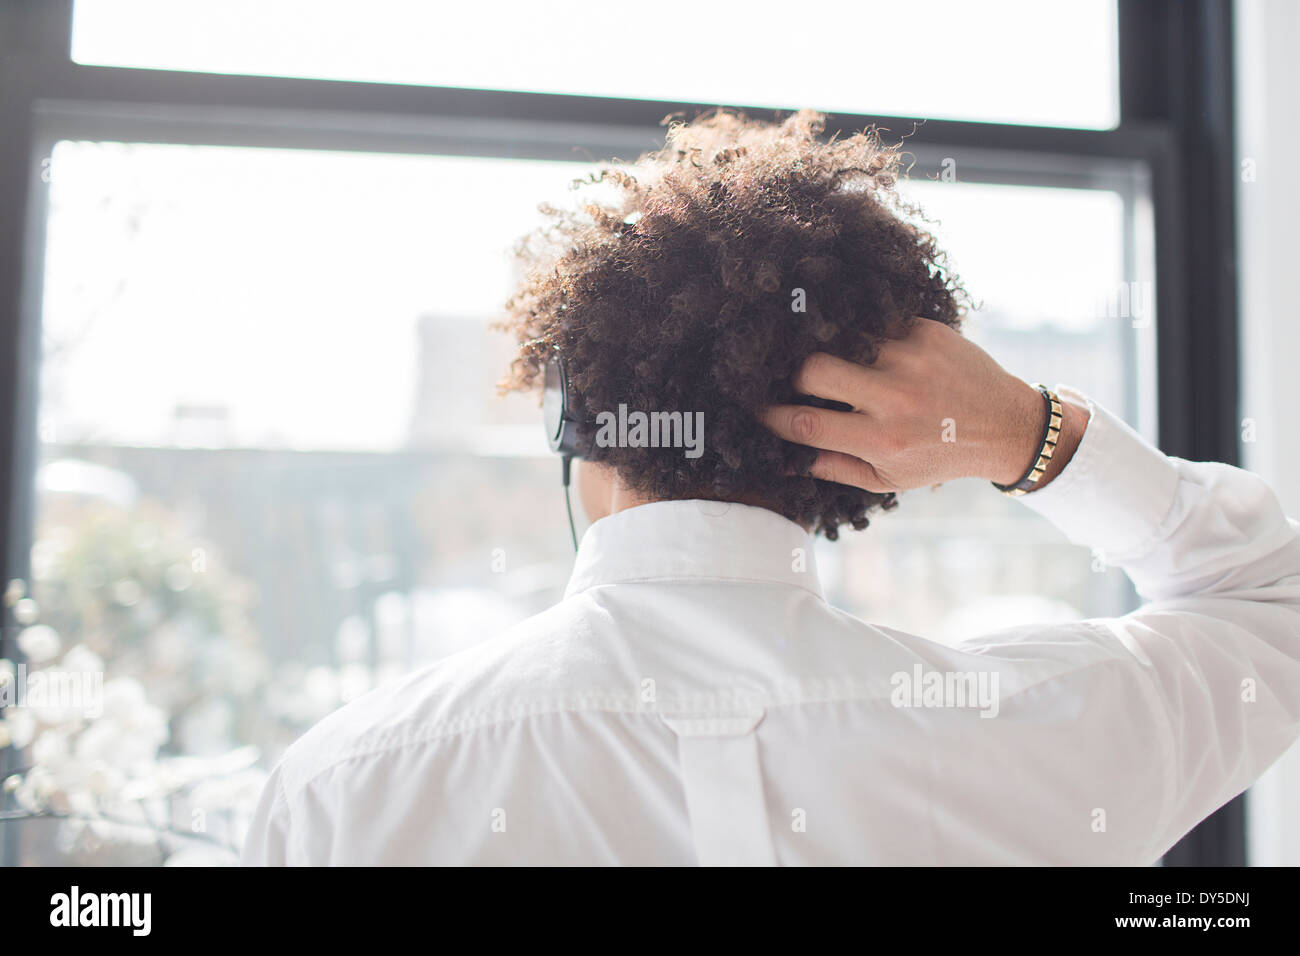 Young man scratching head, rear view - Stock Image